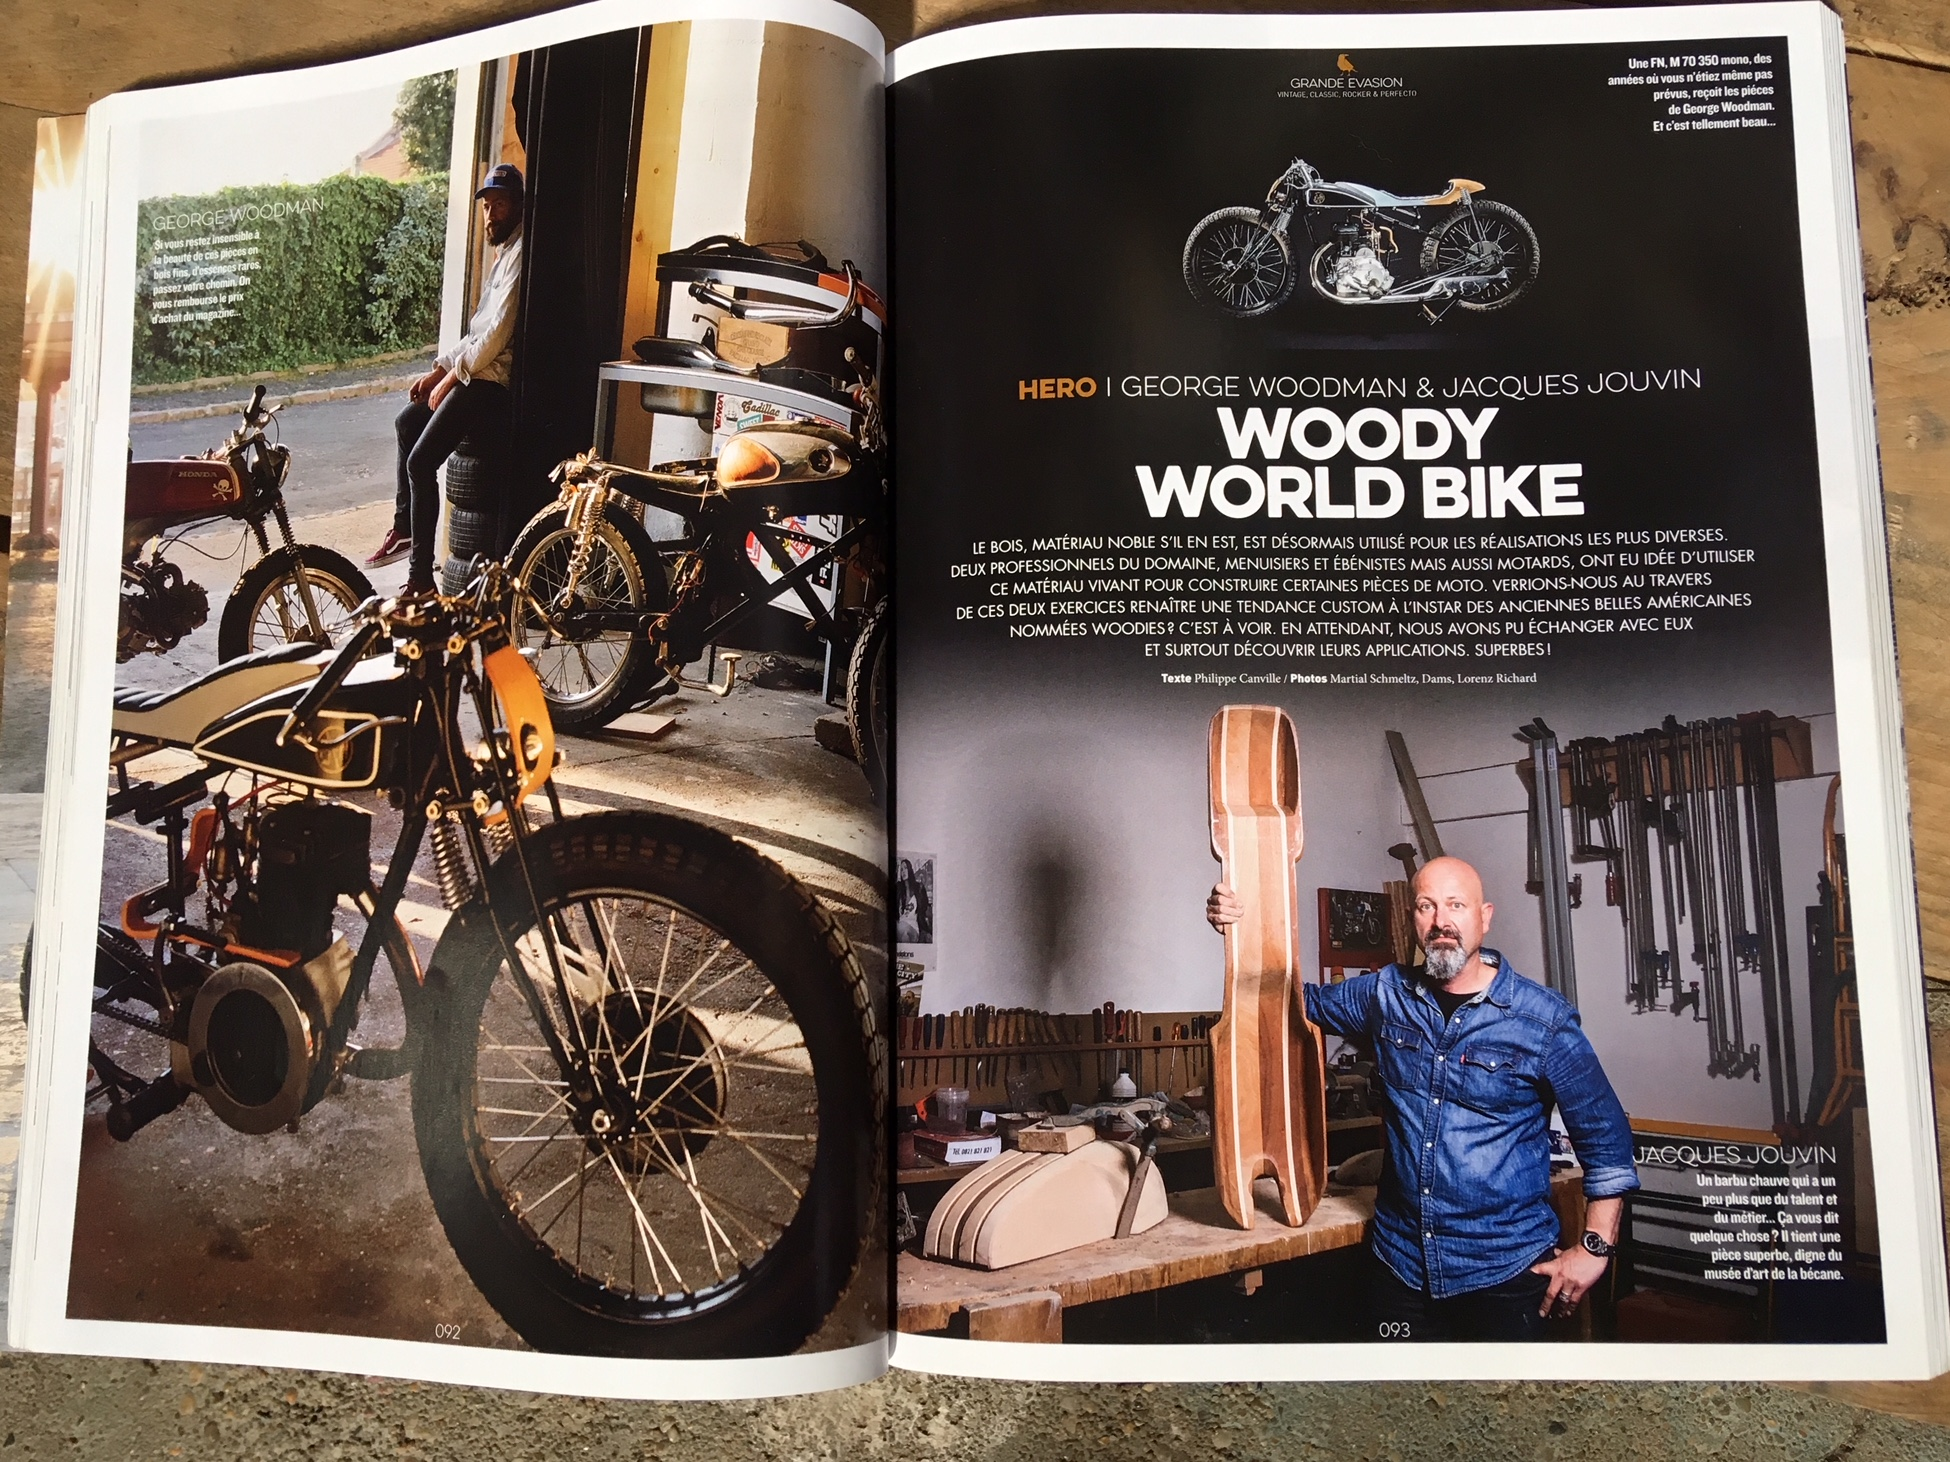 This article introduce Jacques Jouvin and me a.k.a George Woodman about the way to mix wood with motorcycles. (I'm the one on the left side ;))